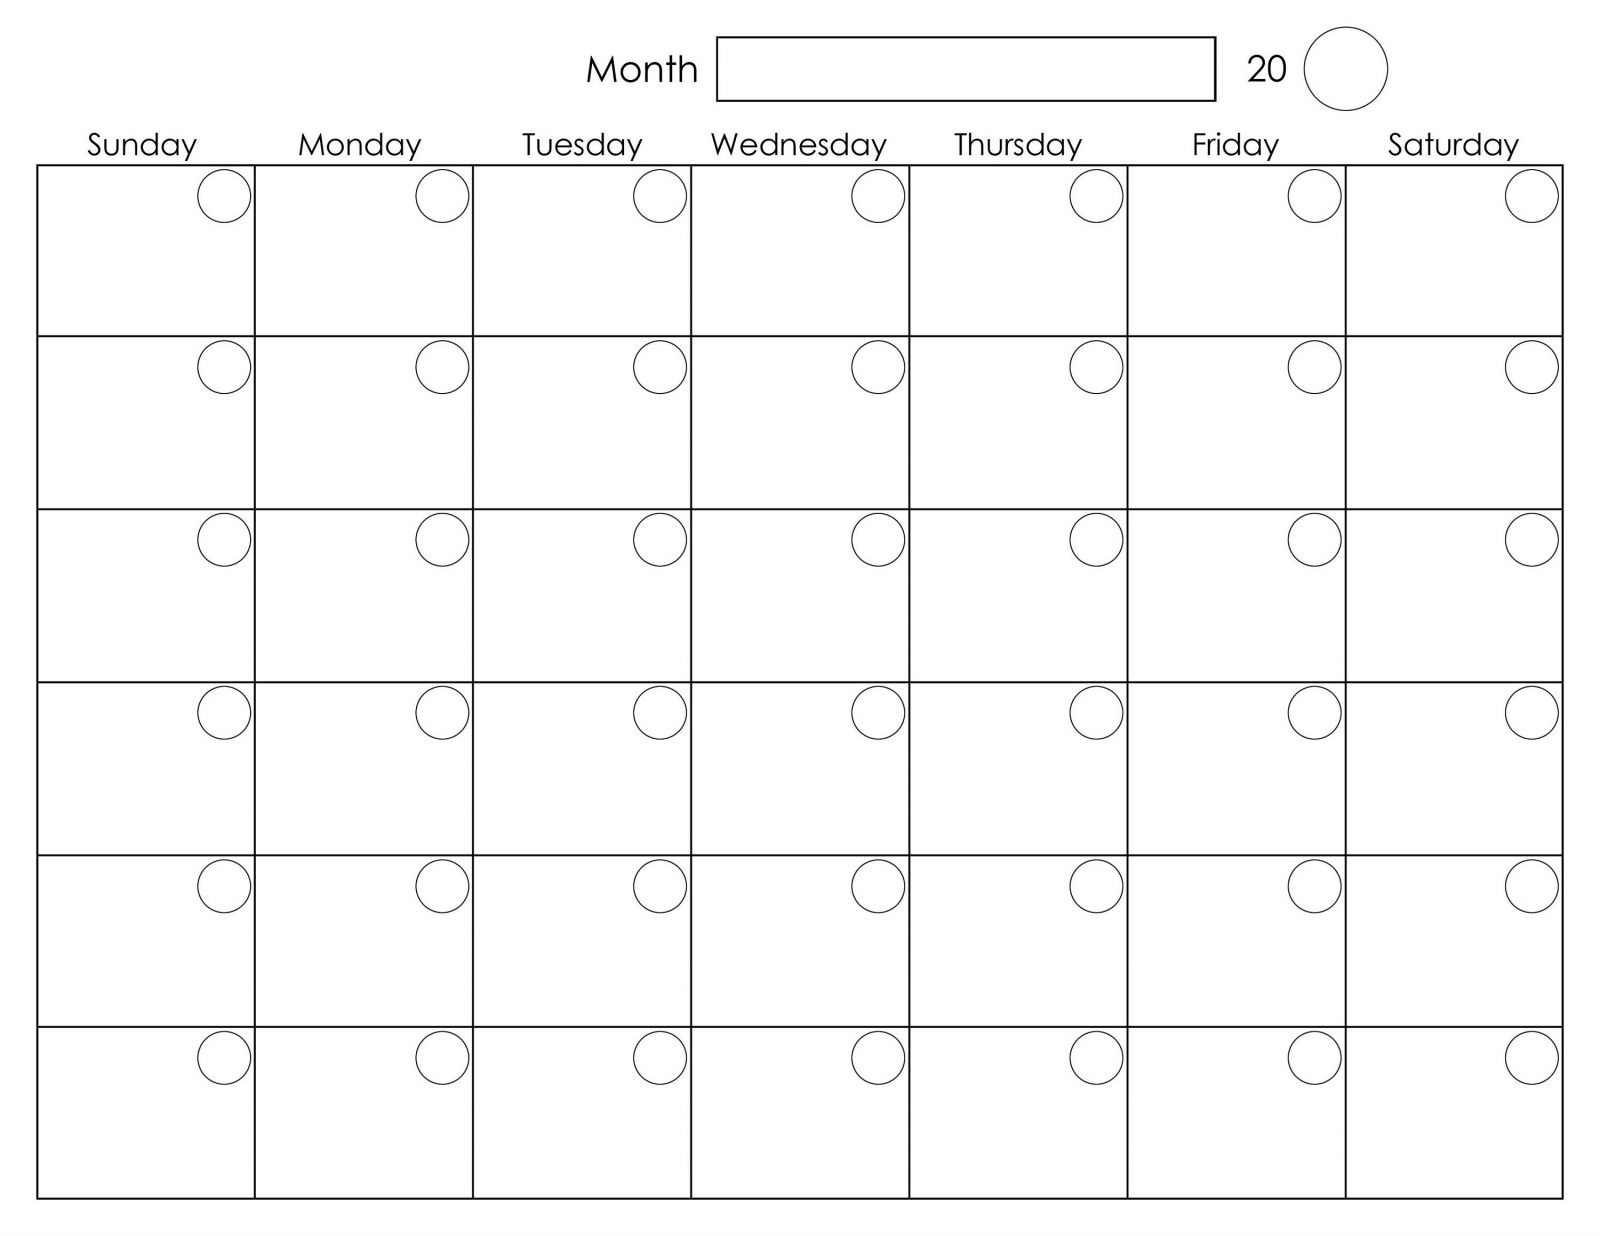 Free Blank Printable Calendar 2019 With Holidays Template-Free Blank Printable Monthly Calendar Monday - Friday